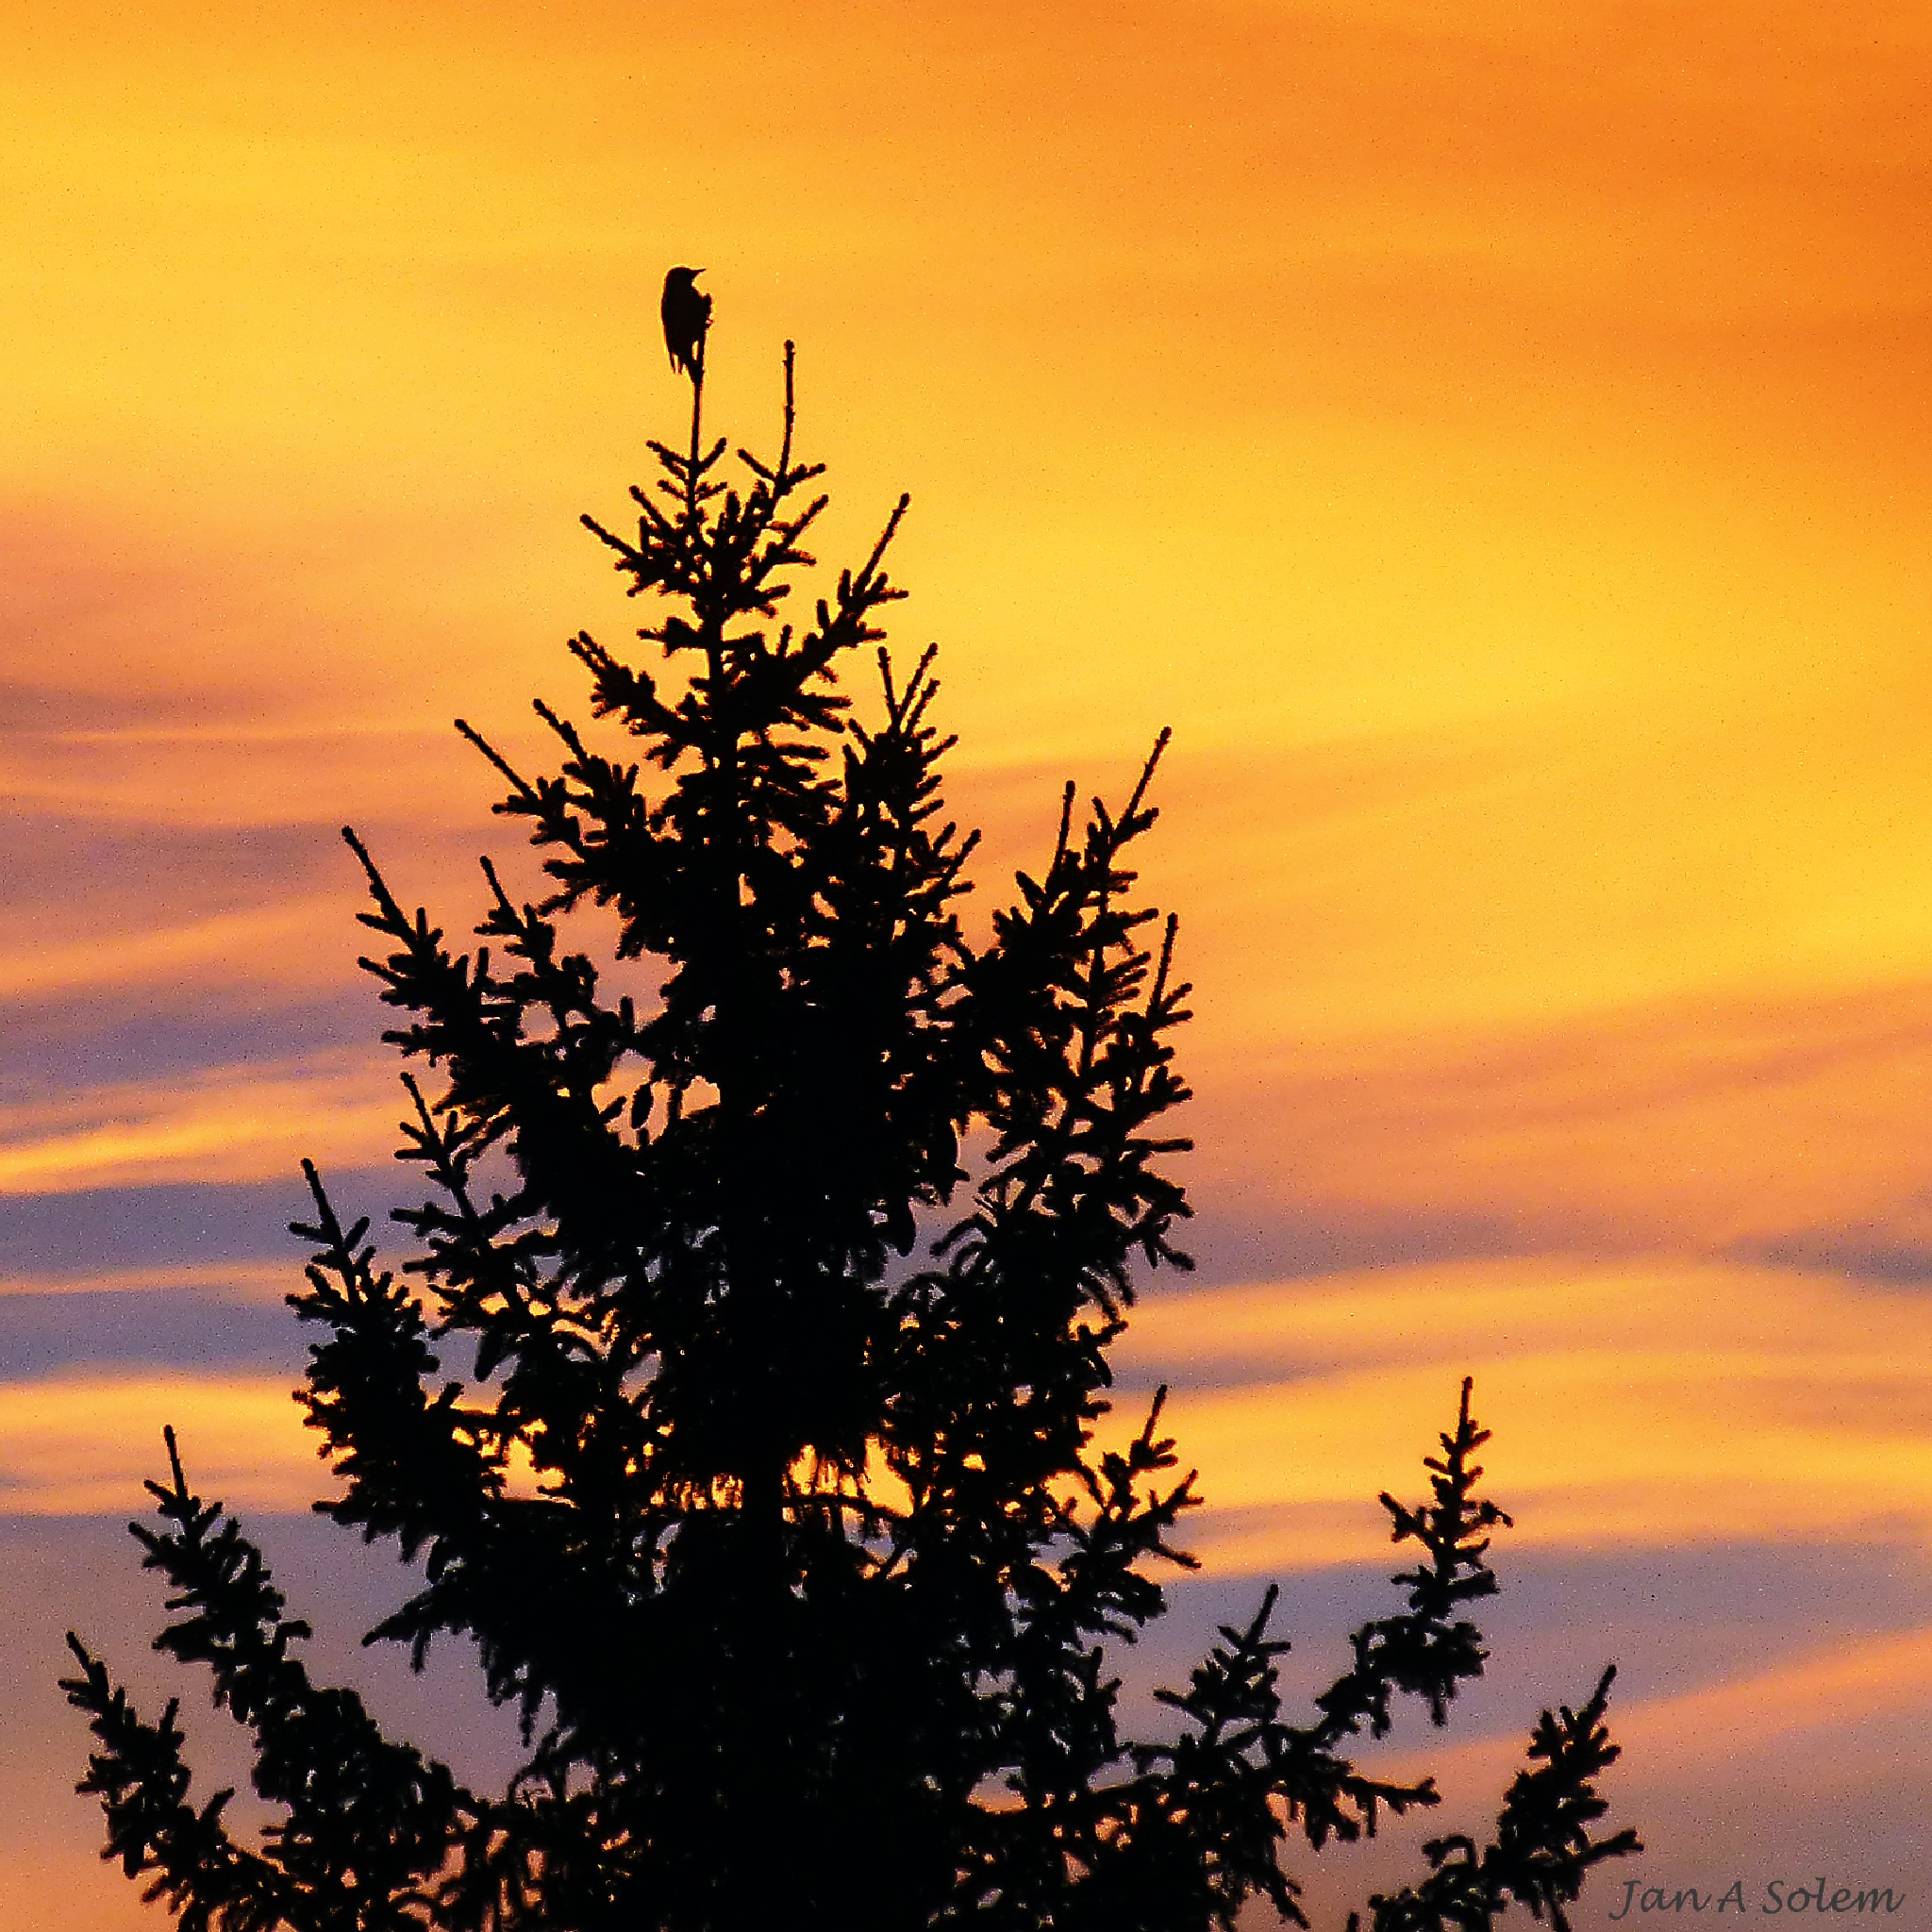 Lone bird at sunrise by Jan Arvid Solem